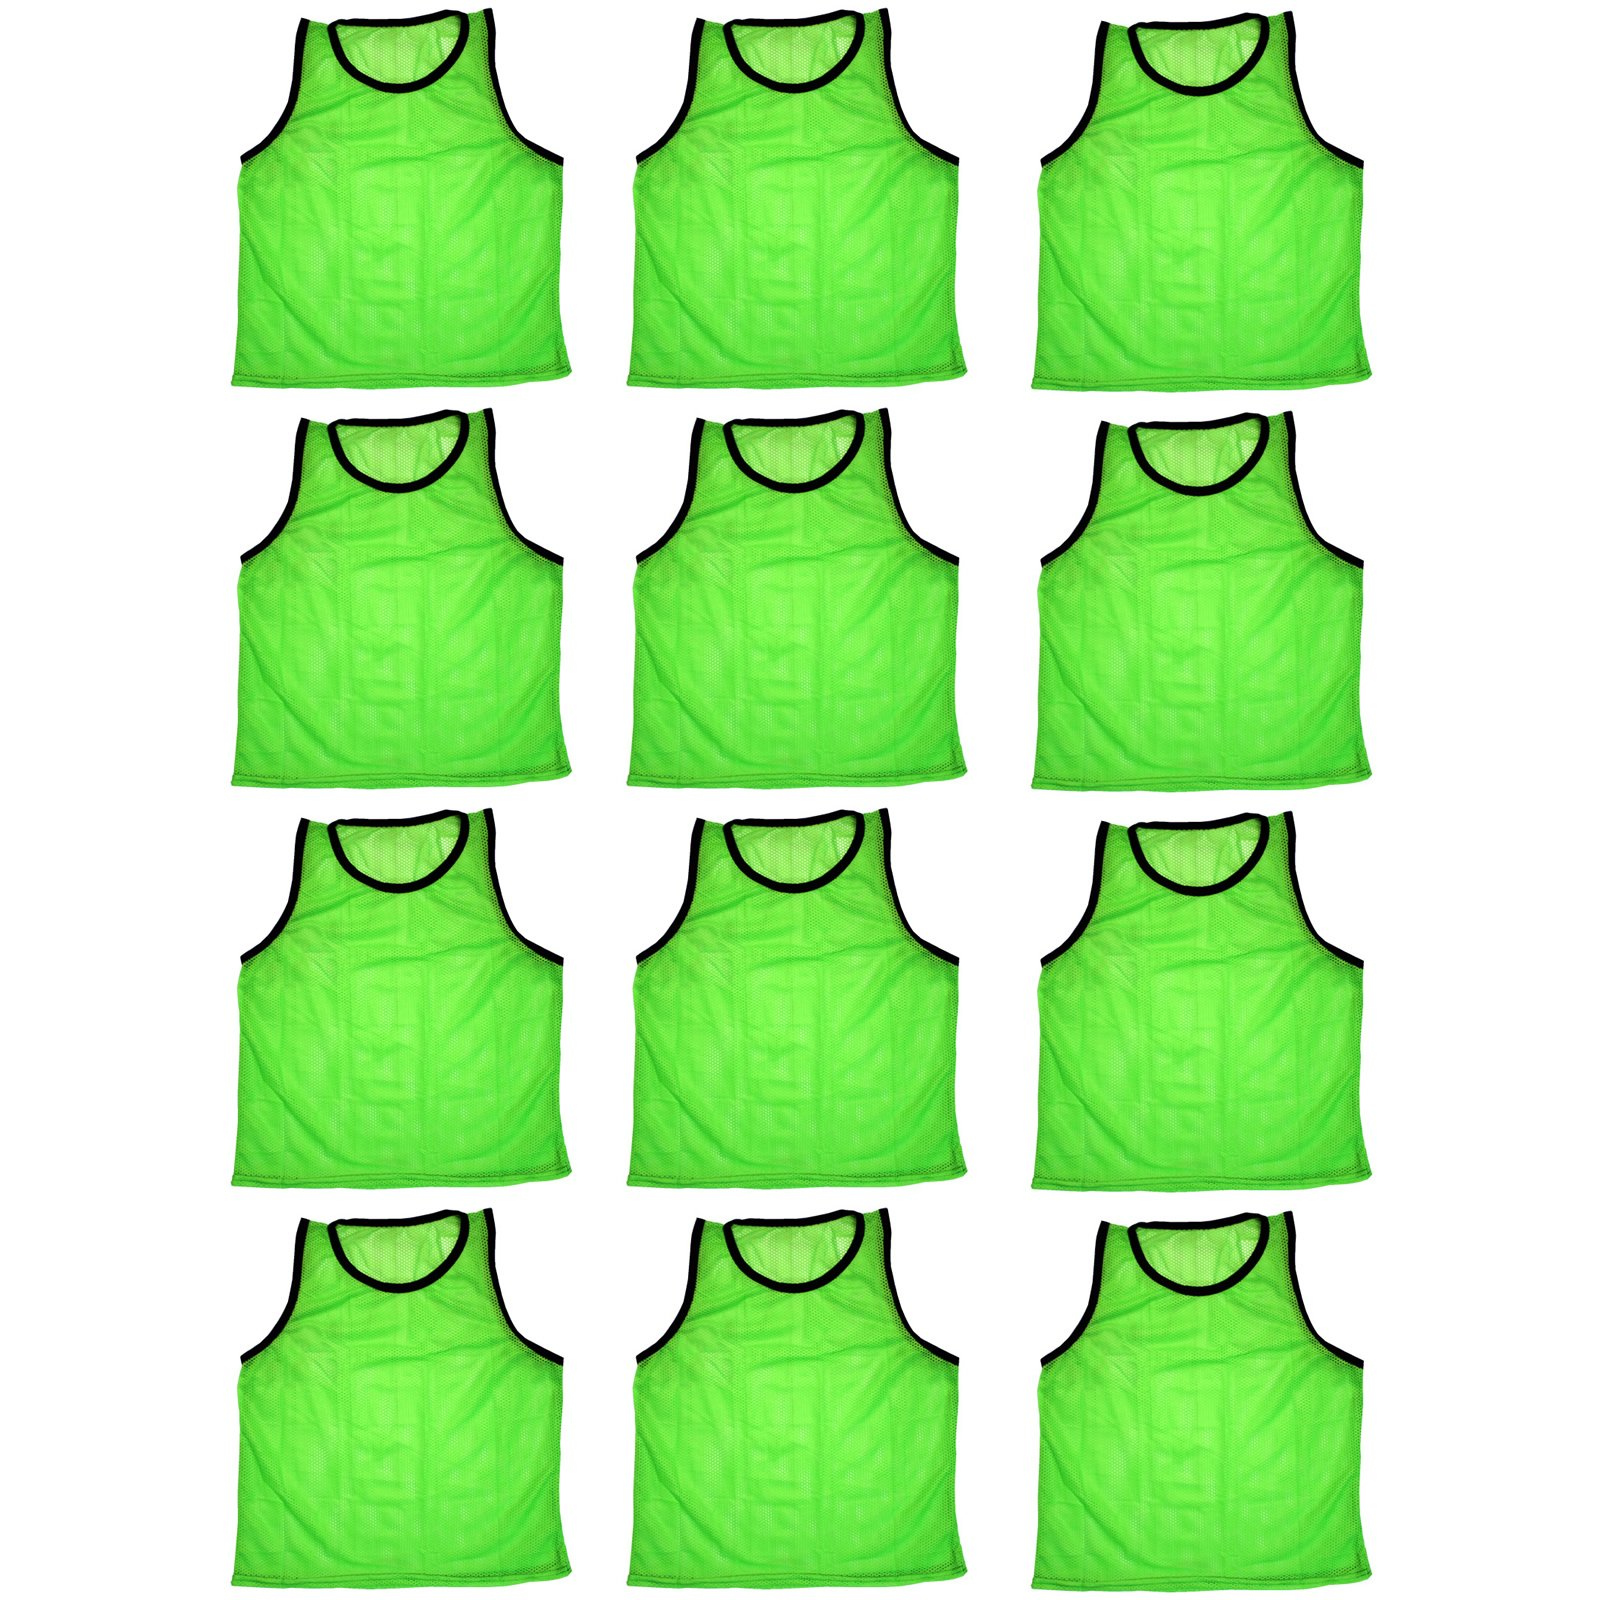 Bluedot Trading Youth 12 Green sports pinnies- 12 scrimmage training vests